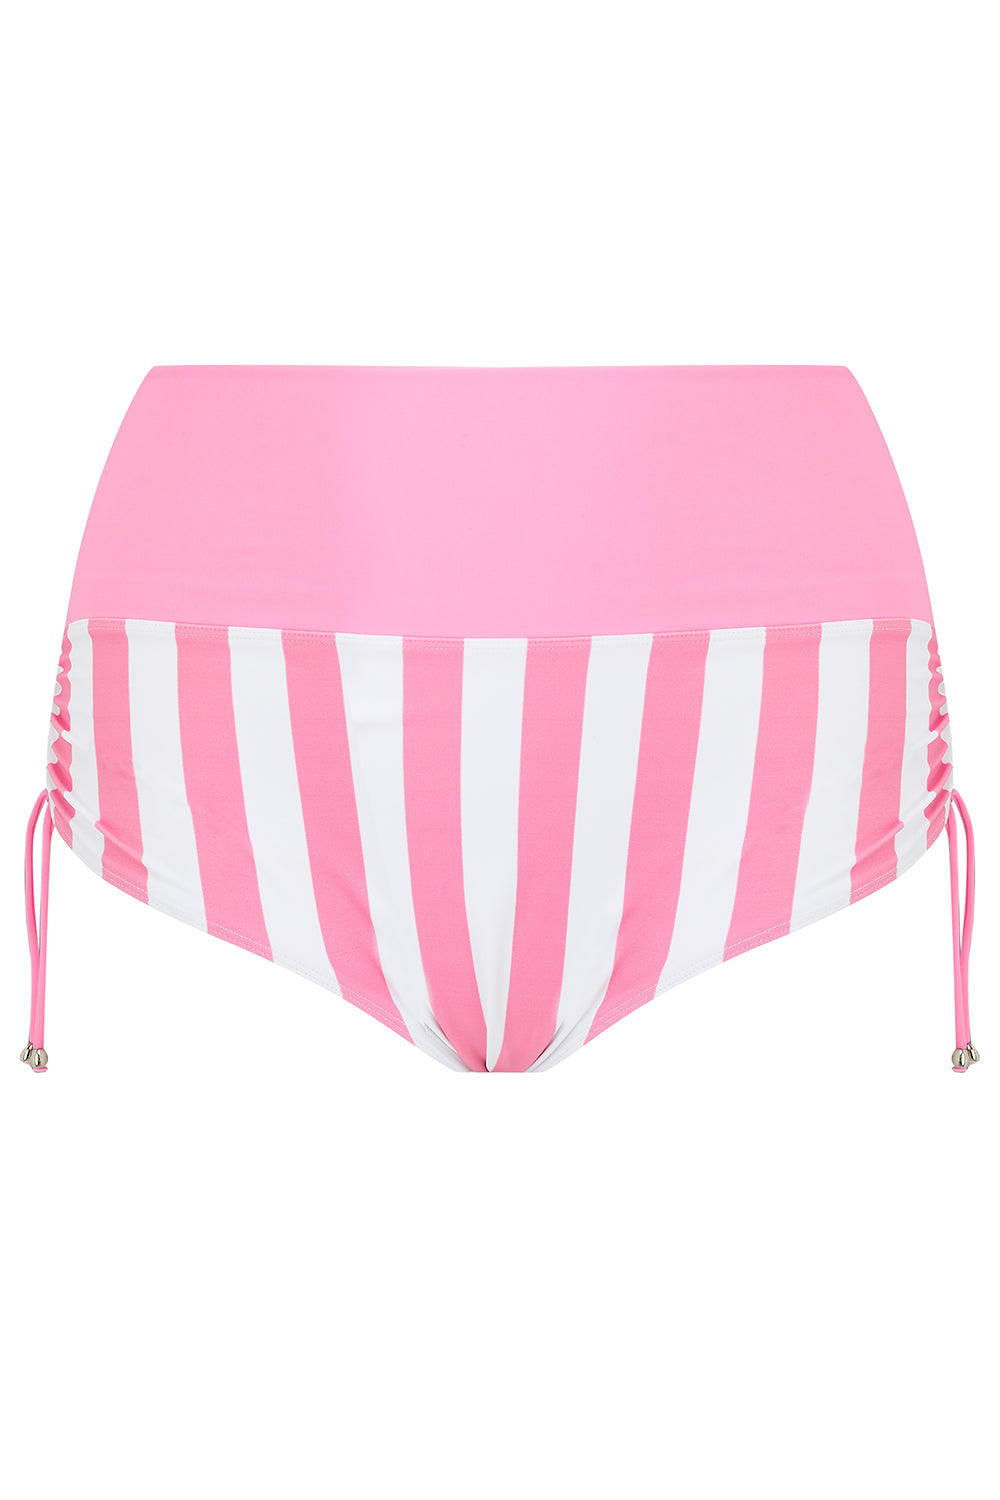 Pink Candy Stripe Plus Size Bikini Bottoms Briefs